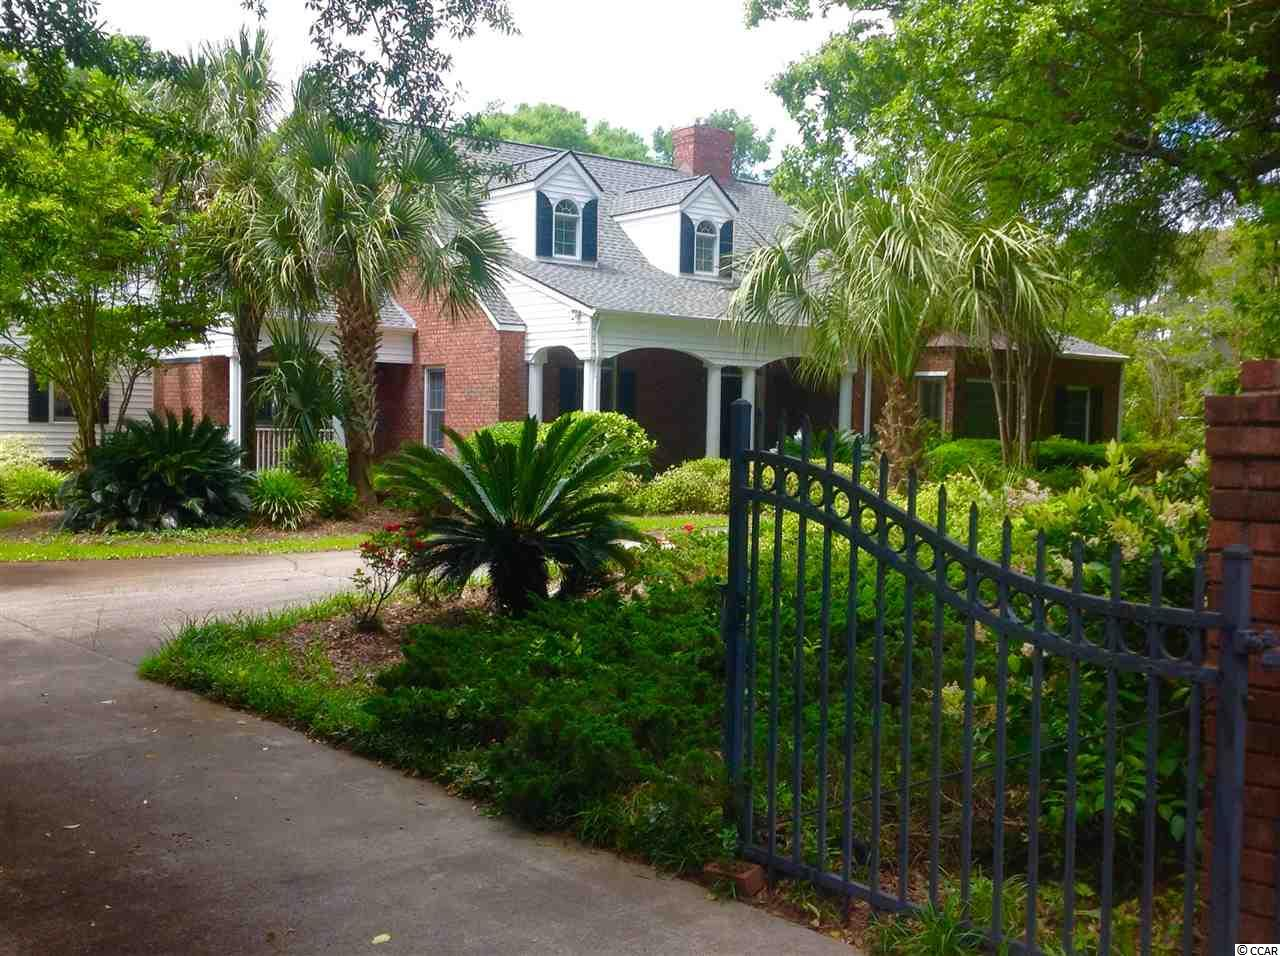 Beautiful, traditional brick home in the community of Arcadian Shores, just a stones throw to the Arcadian Shores Golf Course and a mere 3 blocks away from the Atlantic Ocean! Located in a very desired and very established neighborhood this home boasts a great room with vaulted ceiling,  built in shelves, a gas fireplace vented to the outside with a beautiful brick chimney surround added for decorative purposes. terra- cotta  tile on both front and rear porches. circular gated driveway lined with with mature majestic oak trees. Oversize porcelain  tile in foyer,kitchen and breakfast room.   Built as a good cents home to help keep the utility bills and the carbon footprint in check. The kitchen offers stainless steel appliances,  and a breakfast nook that leads to a screened porch. The large tiled patio outdoors offers the perfect space for people who love to entertain or just relax and soak in the South Carolina sun. There is also a bonus room upstairs with a full bath, closet, and some additional storage. Timberline ultra high definition roof was just recently installed in 2017.  This home features beautiful hardwood trees, Many mature palm trees, colorful mature azaleas, beautiful natural grown crepe trees adorn the over sized lot.  underground pump, pump house and irrigation system. This property is being sold as is, buyer is responsible for verification.